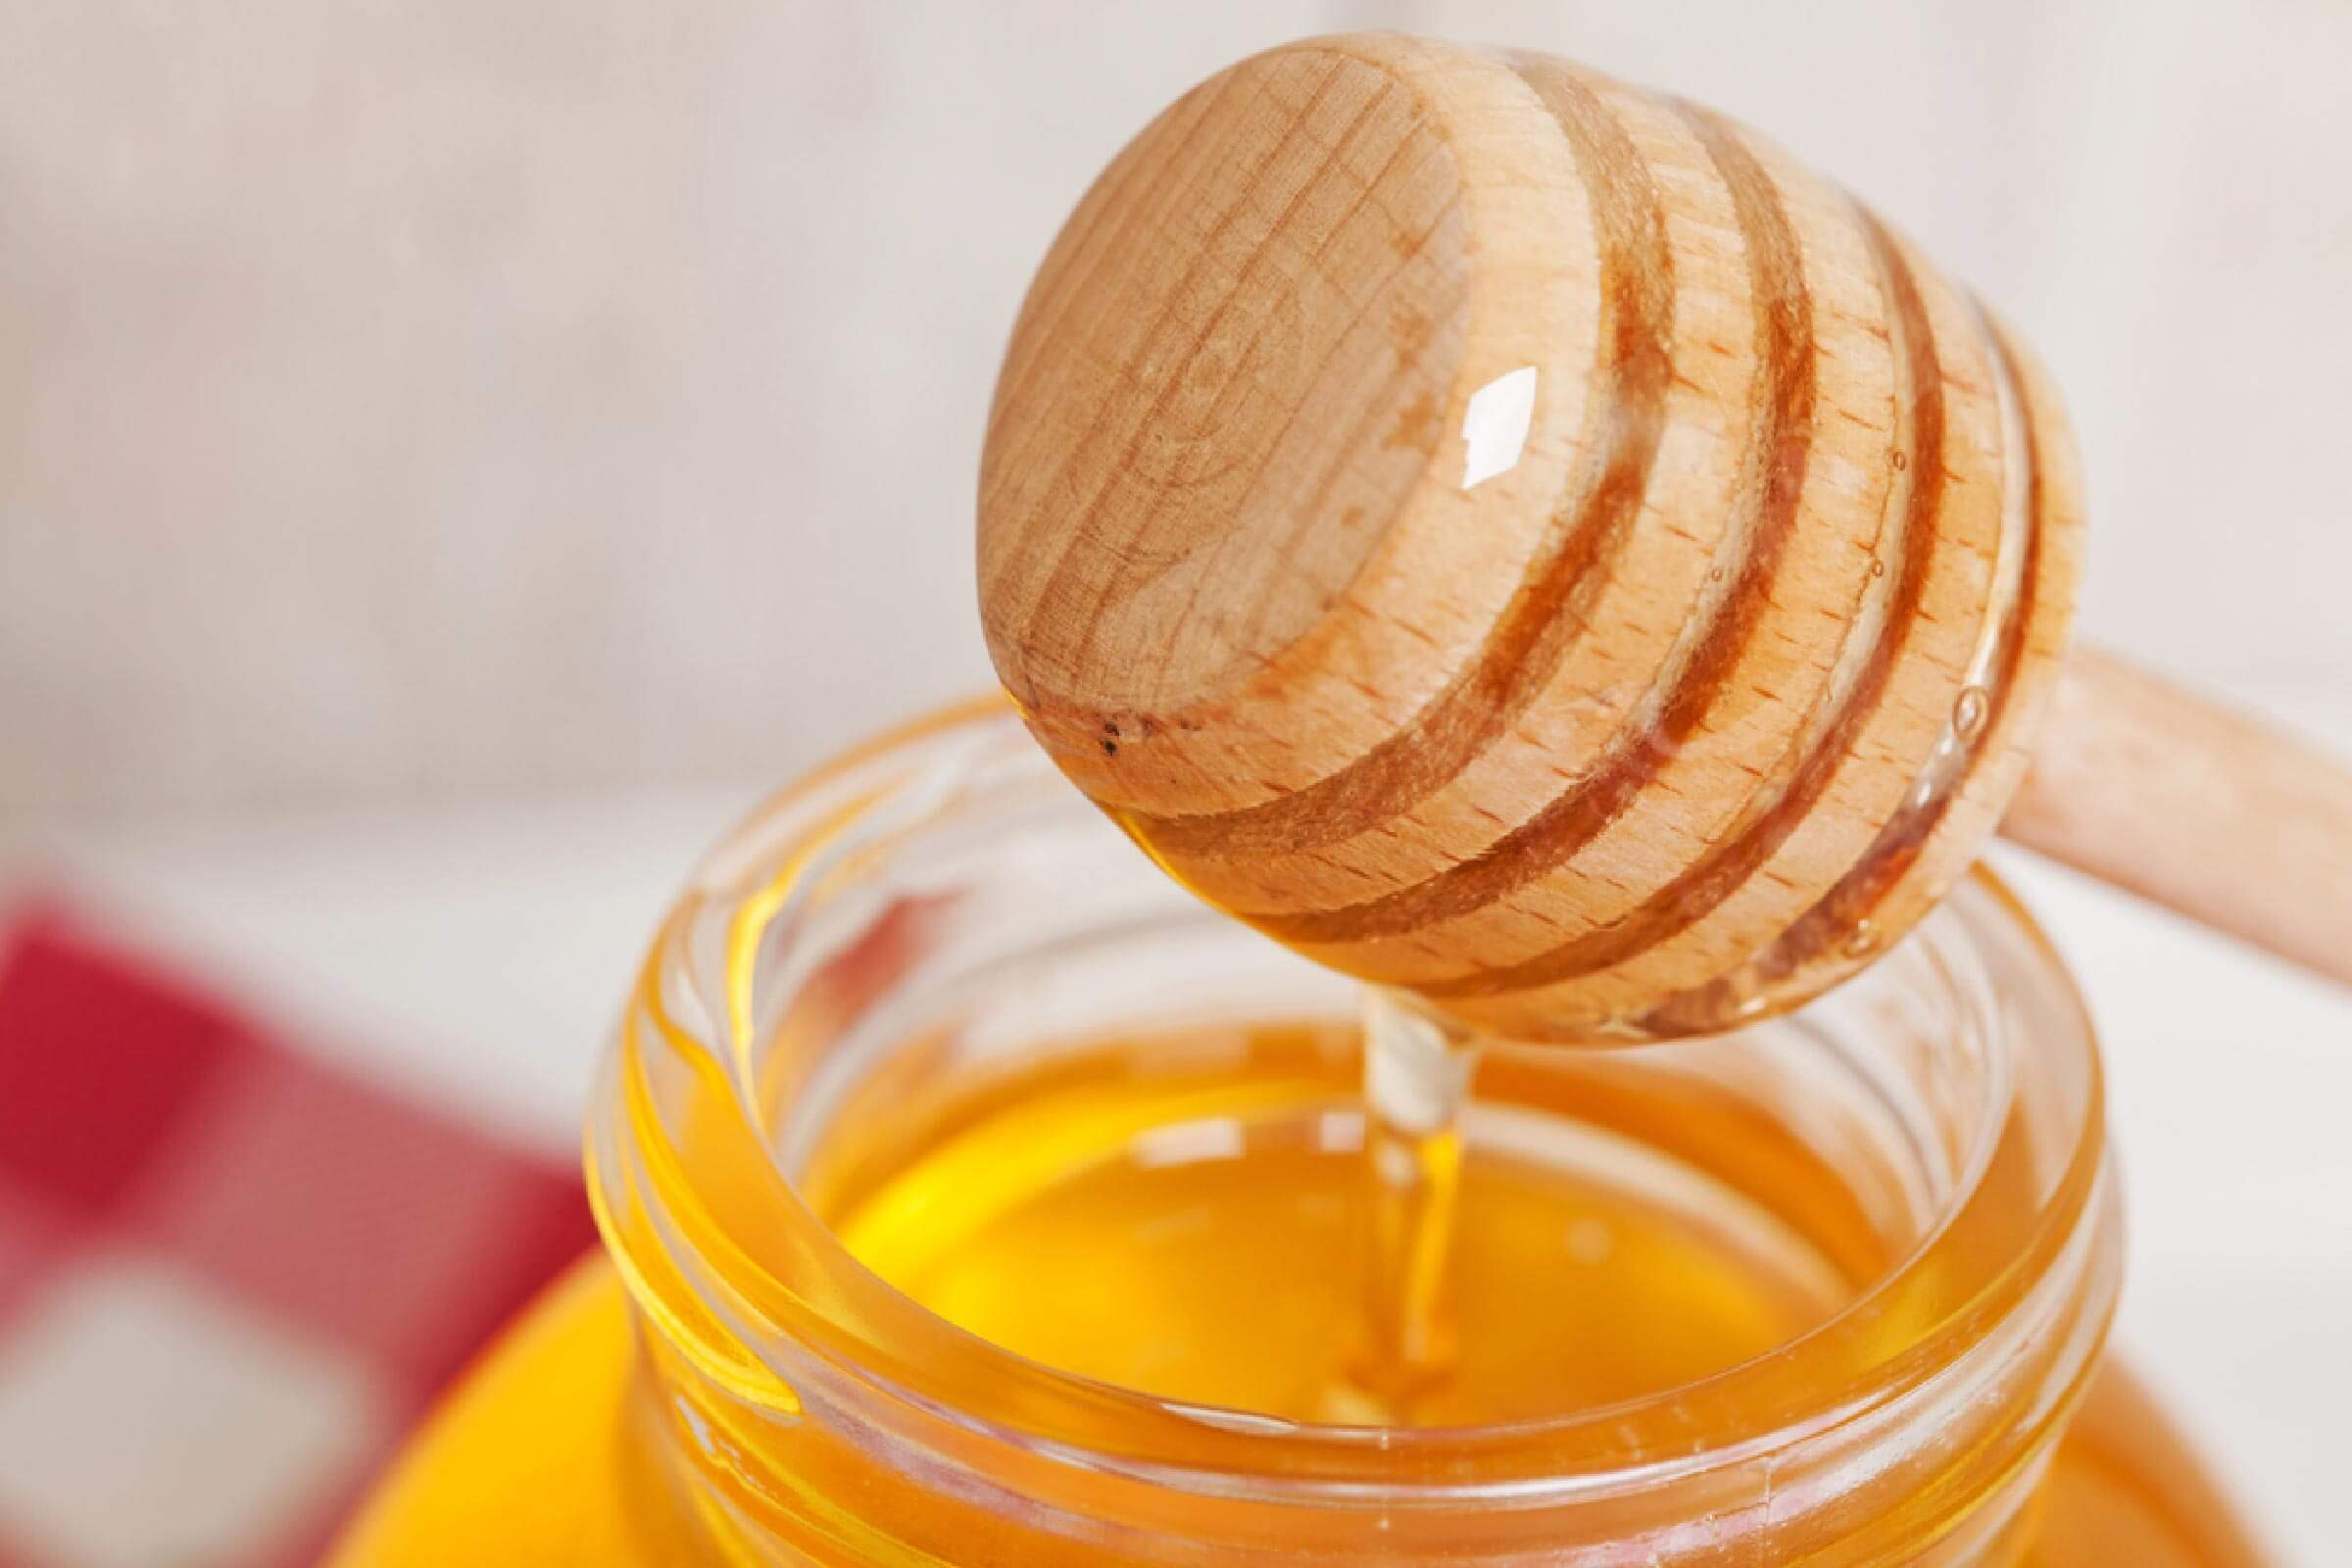 Jar of honey with wooden honey dipper.